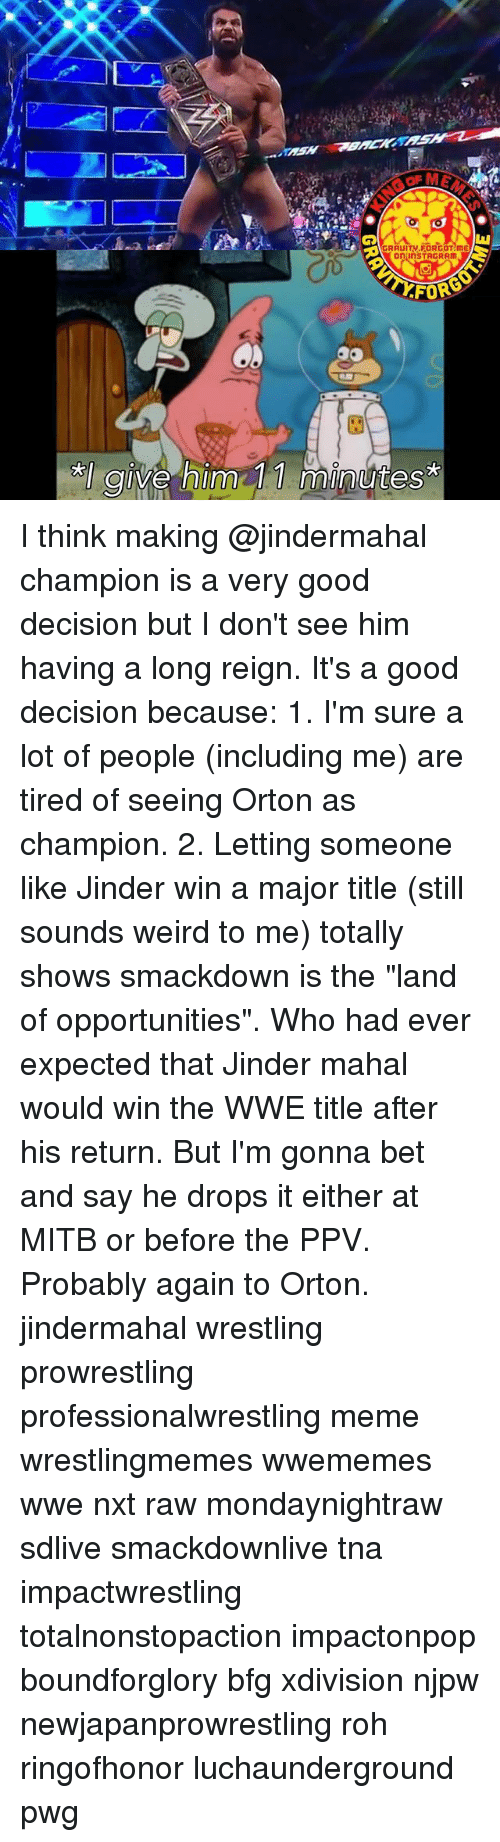 """tna: AGRAUITM FORGOT ME  on InSTAGRAM  FOR  Ive Inn  mint I think making @jindermahal champion is a very good decision but I don't see him having a long reign. It's a good decision because: 1. I'm sure a lot of people (including me) are tired of seeing Orton as champion. 2. Letting someone like Jinder win a major title (still sounds weird to me) totally shows smackdown is the """"land of opportunities"""". Who had ever expected that Jinder mahal would win the WWE title after his return. But I'm gonna bet and say he drops it either at MITB or before the PPV. Probably again to Orton. jindermahal wrestling prowrestling professionalwrestling meme wrestlingmemes wwememes wwe nxt raw mondaynightraw sdlive smackdownlive tna impactwrestling totalnonstopaction impactonpop boundforglory bfg xdivision njpw newjapanprowrestling roh ringofhonor luchaunderground pwg"""